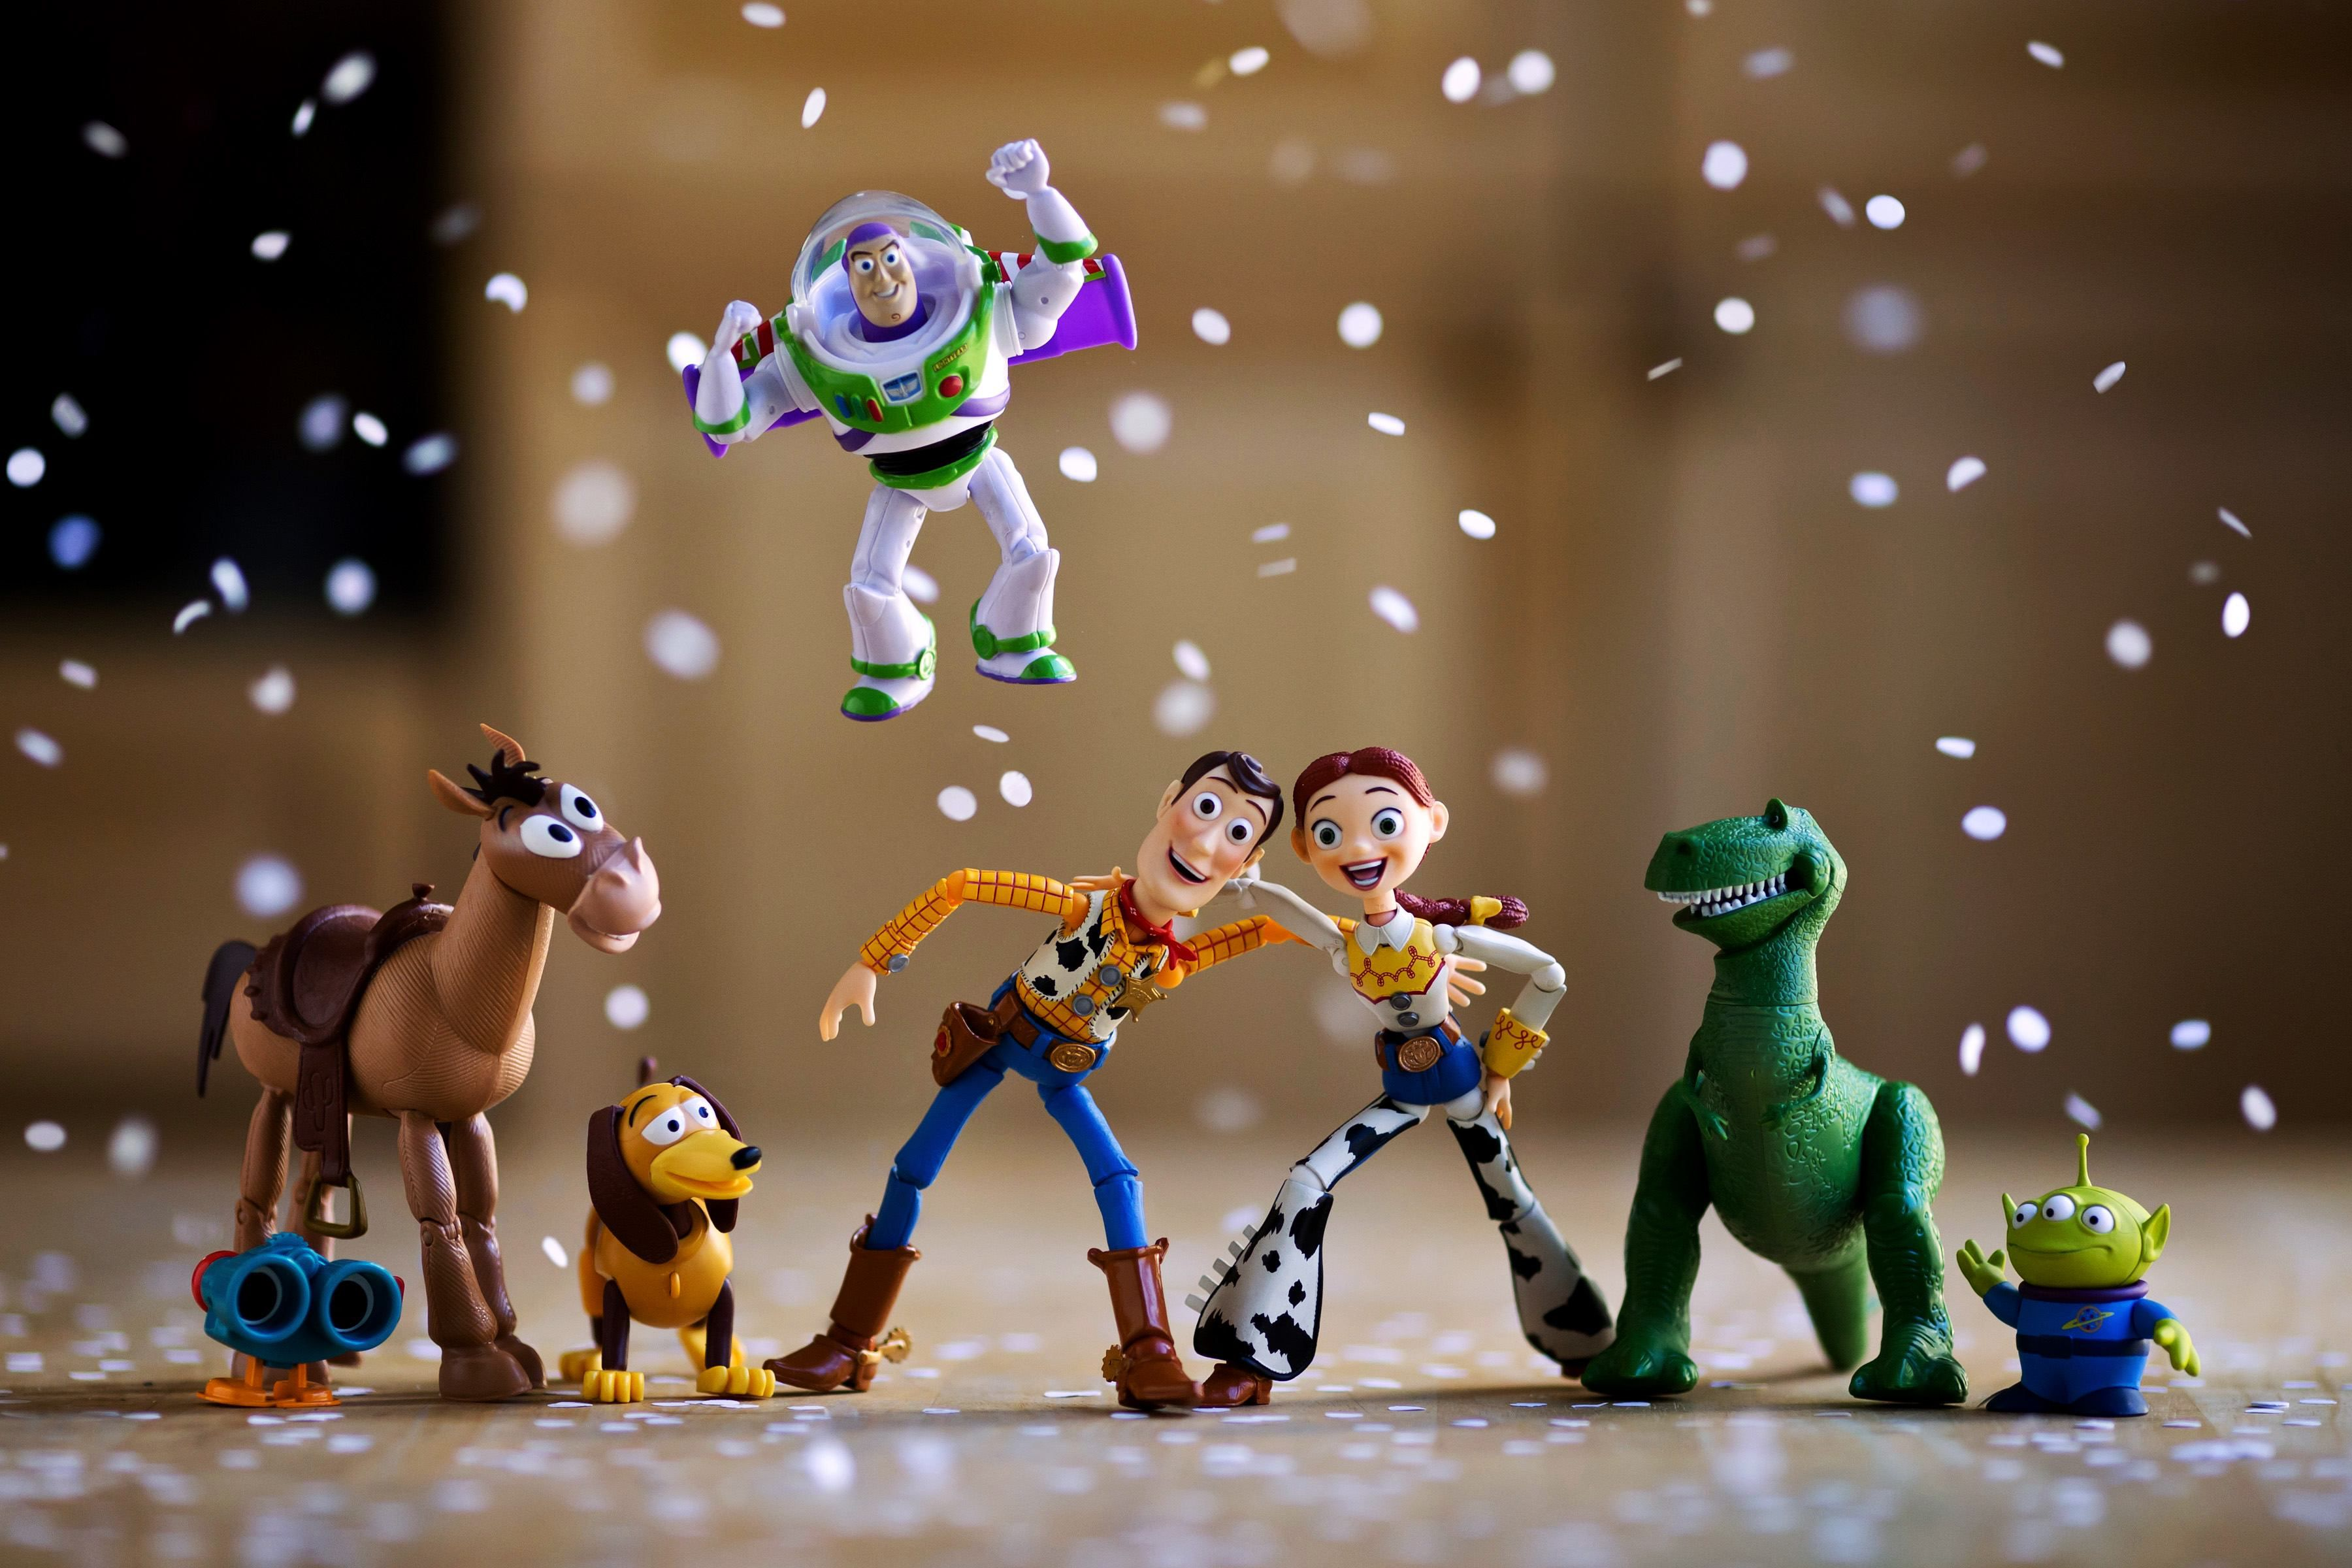 Toy story photography hd others 4k wallpapers images - Toy story wallpaper ...